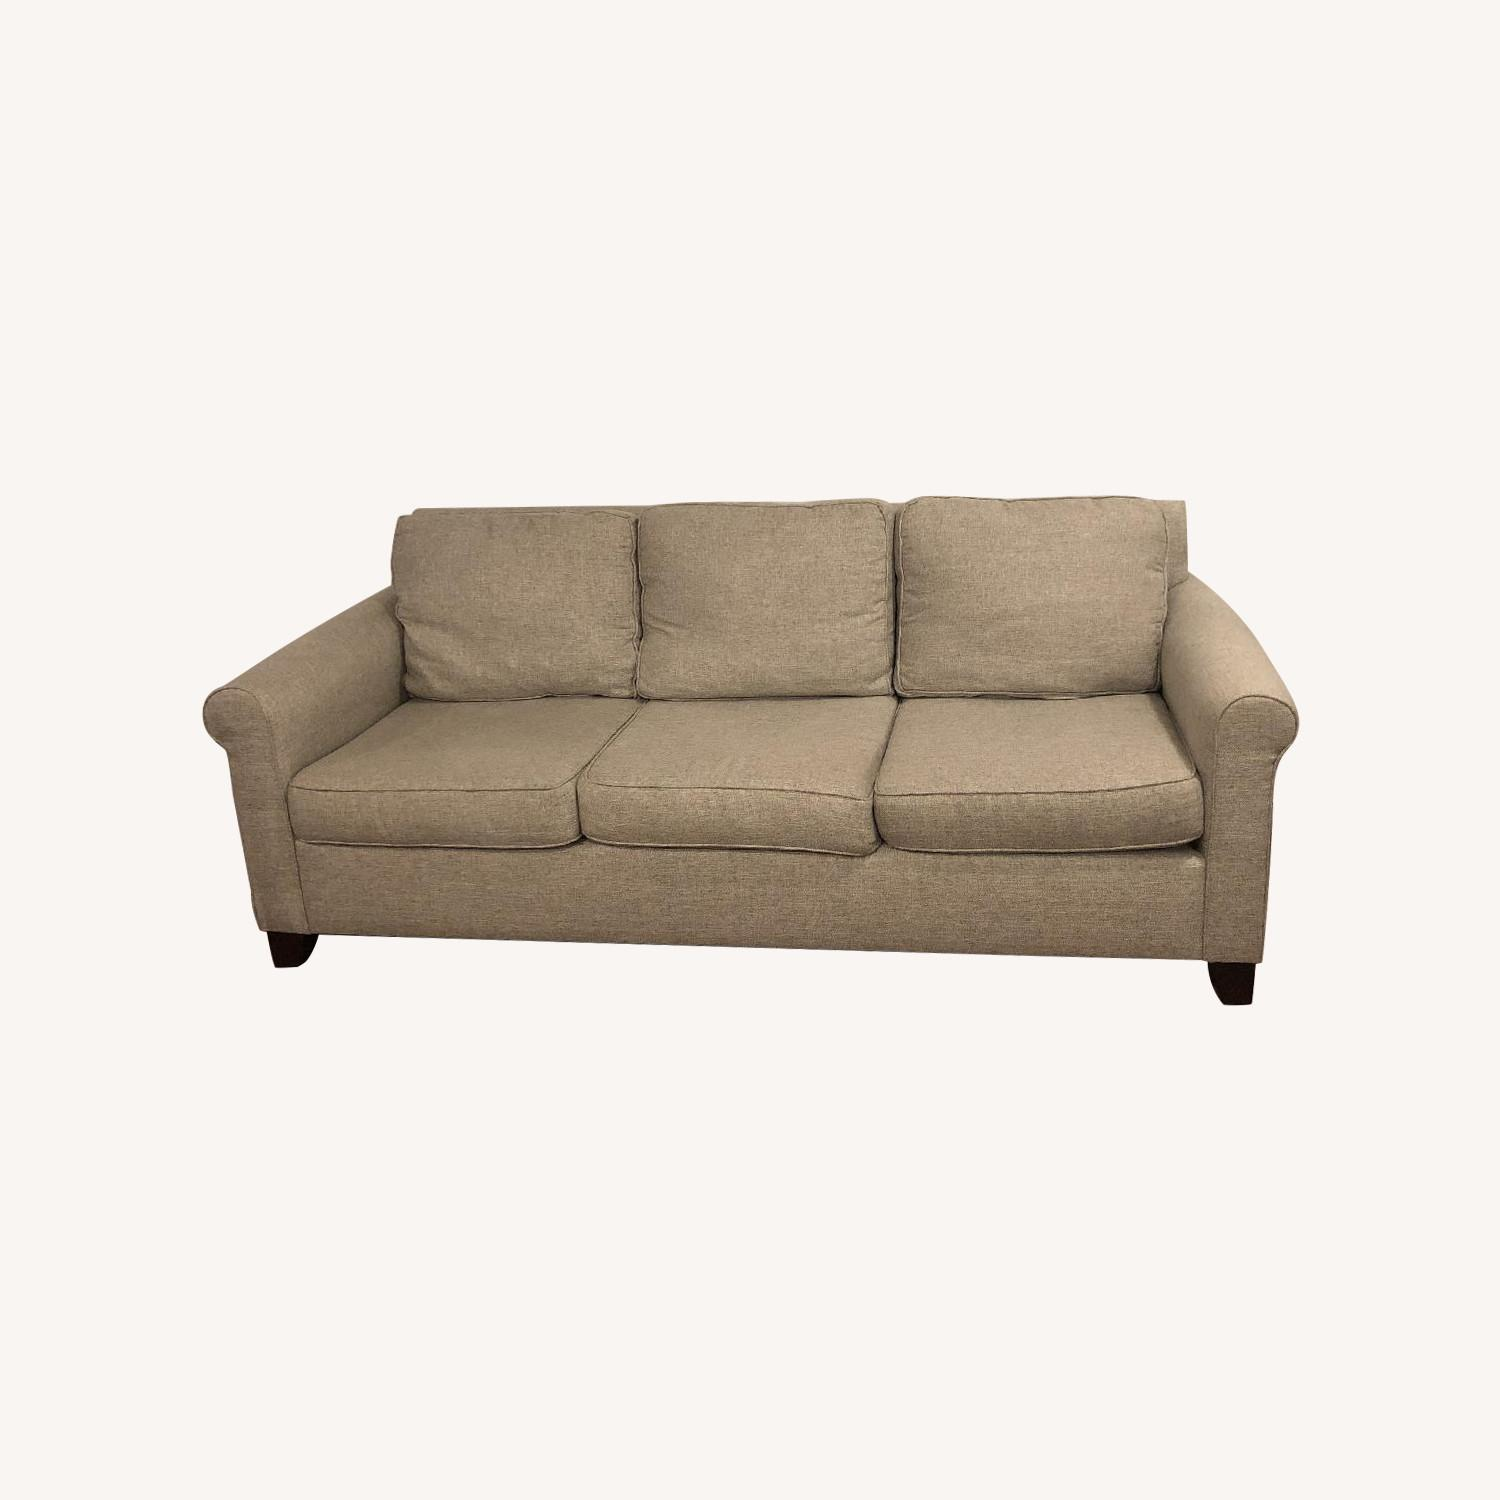 Pottery Barn Cameron Upholstered Sofa - image-0